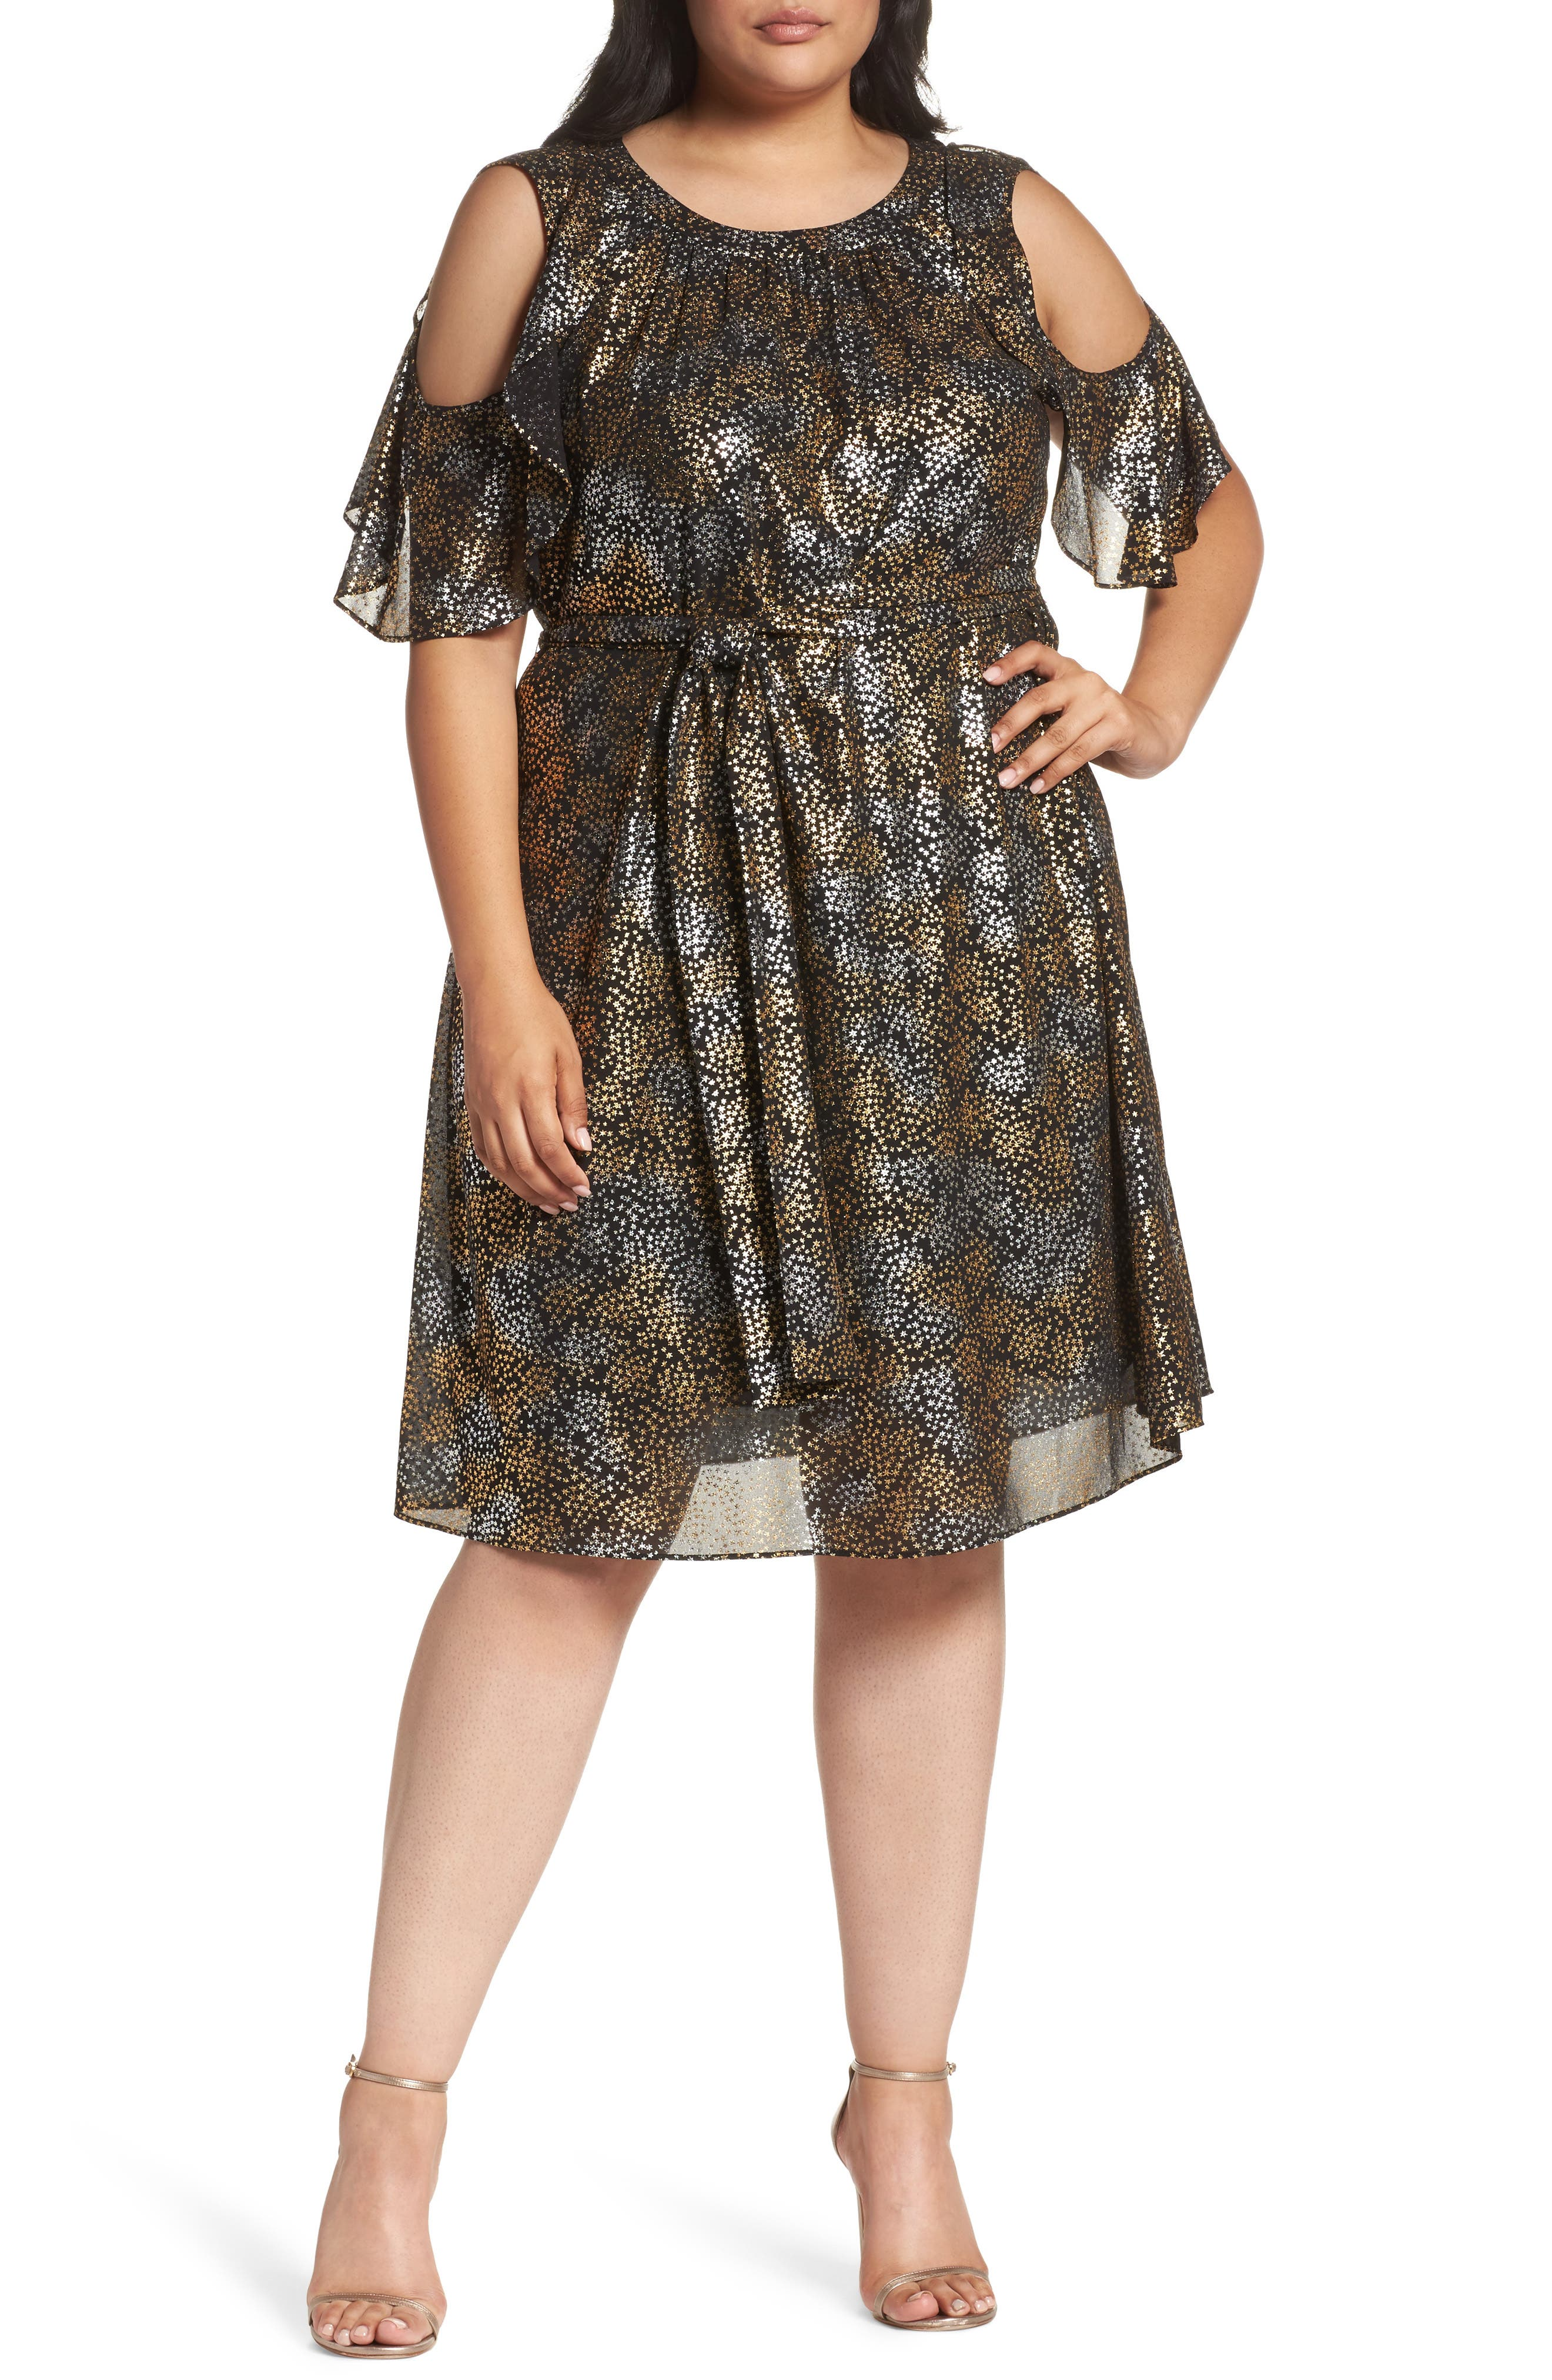 Main Image - MICHAEL Michael Kors Cold Shoulder Metallic Star A-Line Dress (Plus Size)